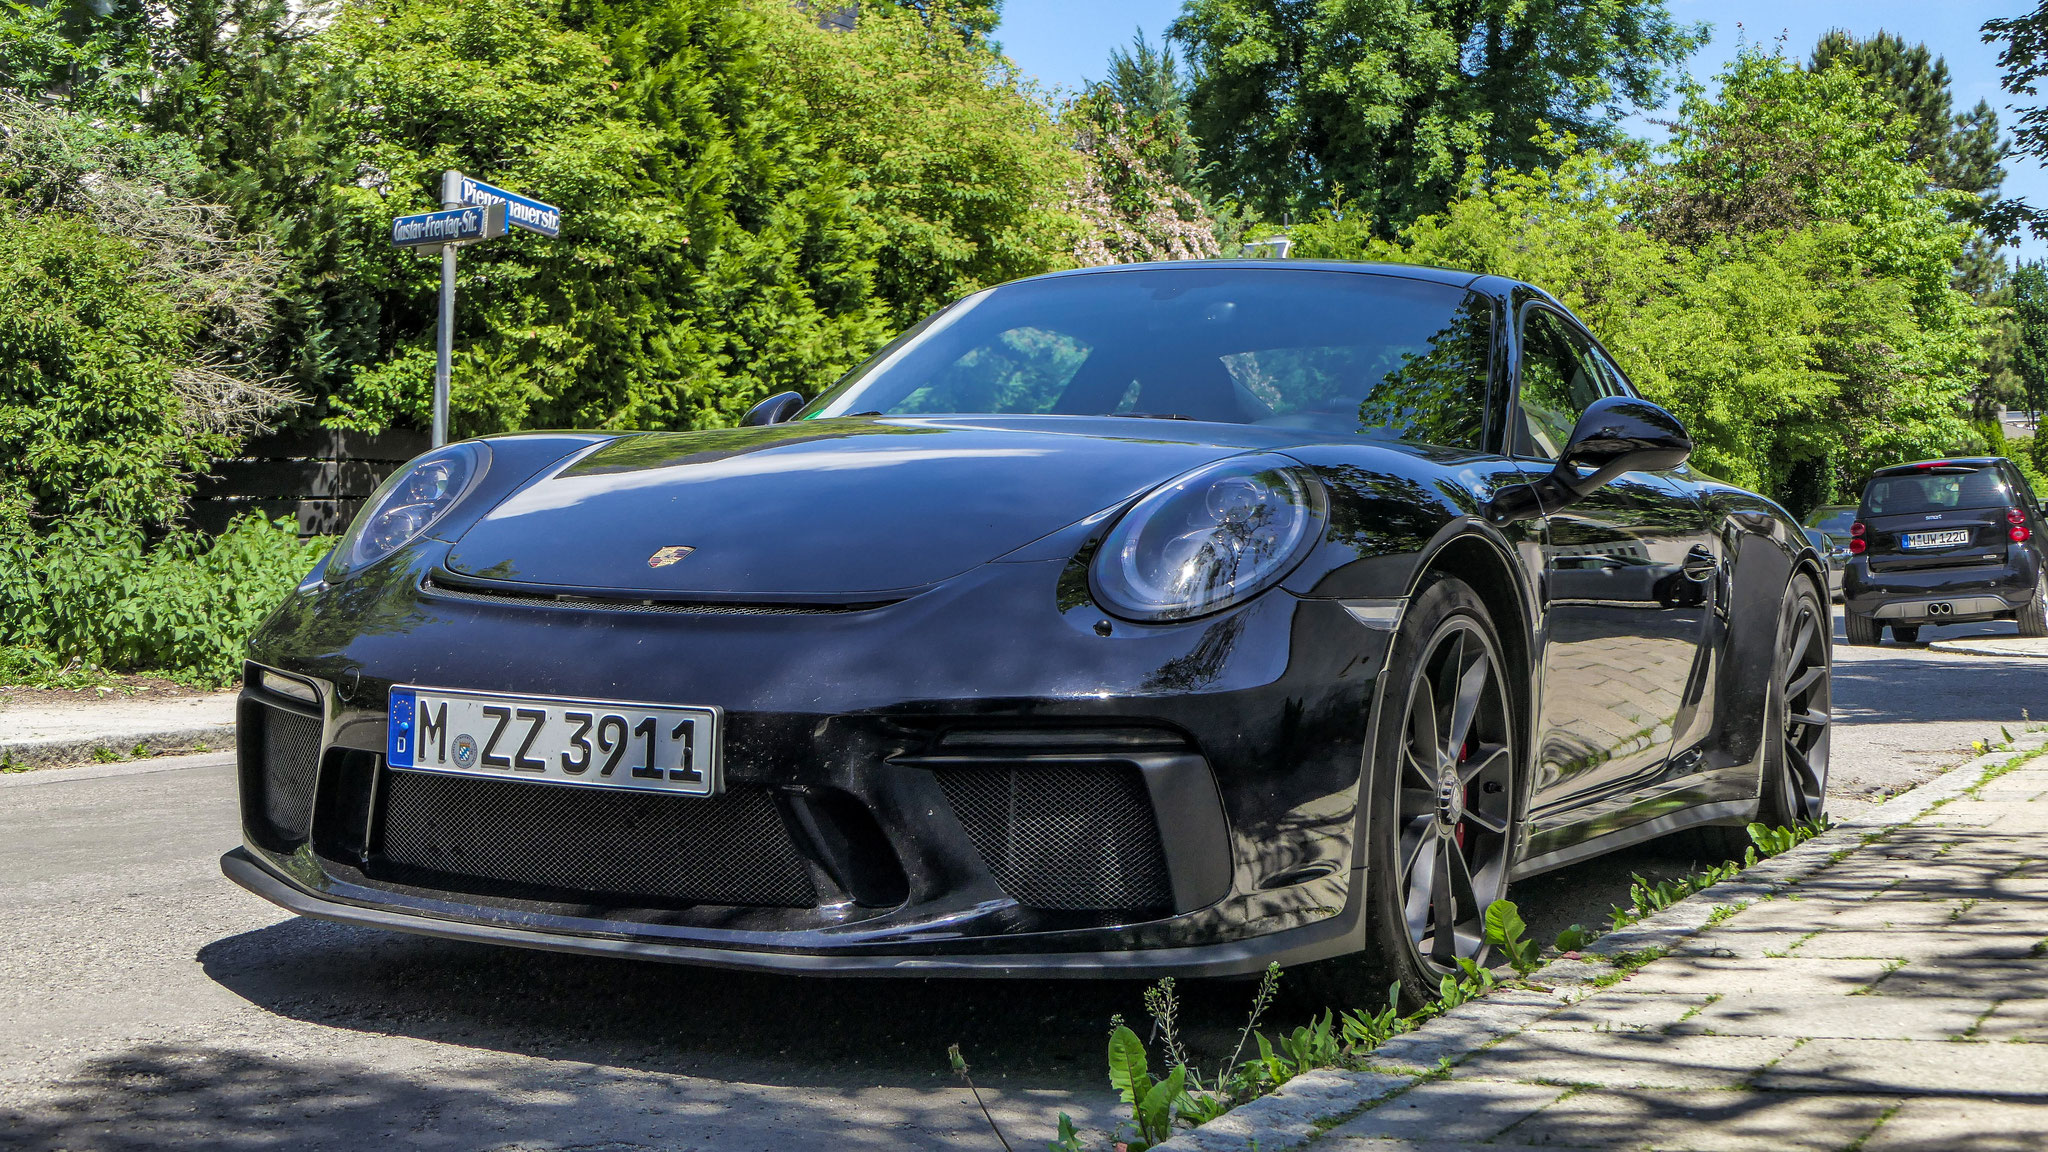 Porsche 991 GT3 Touring Package - M-ZZ-3911